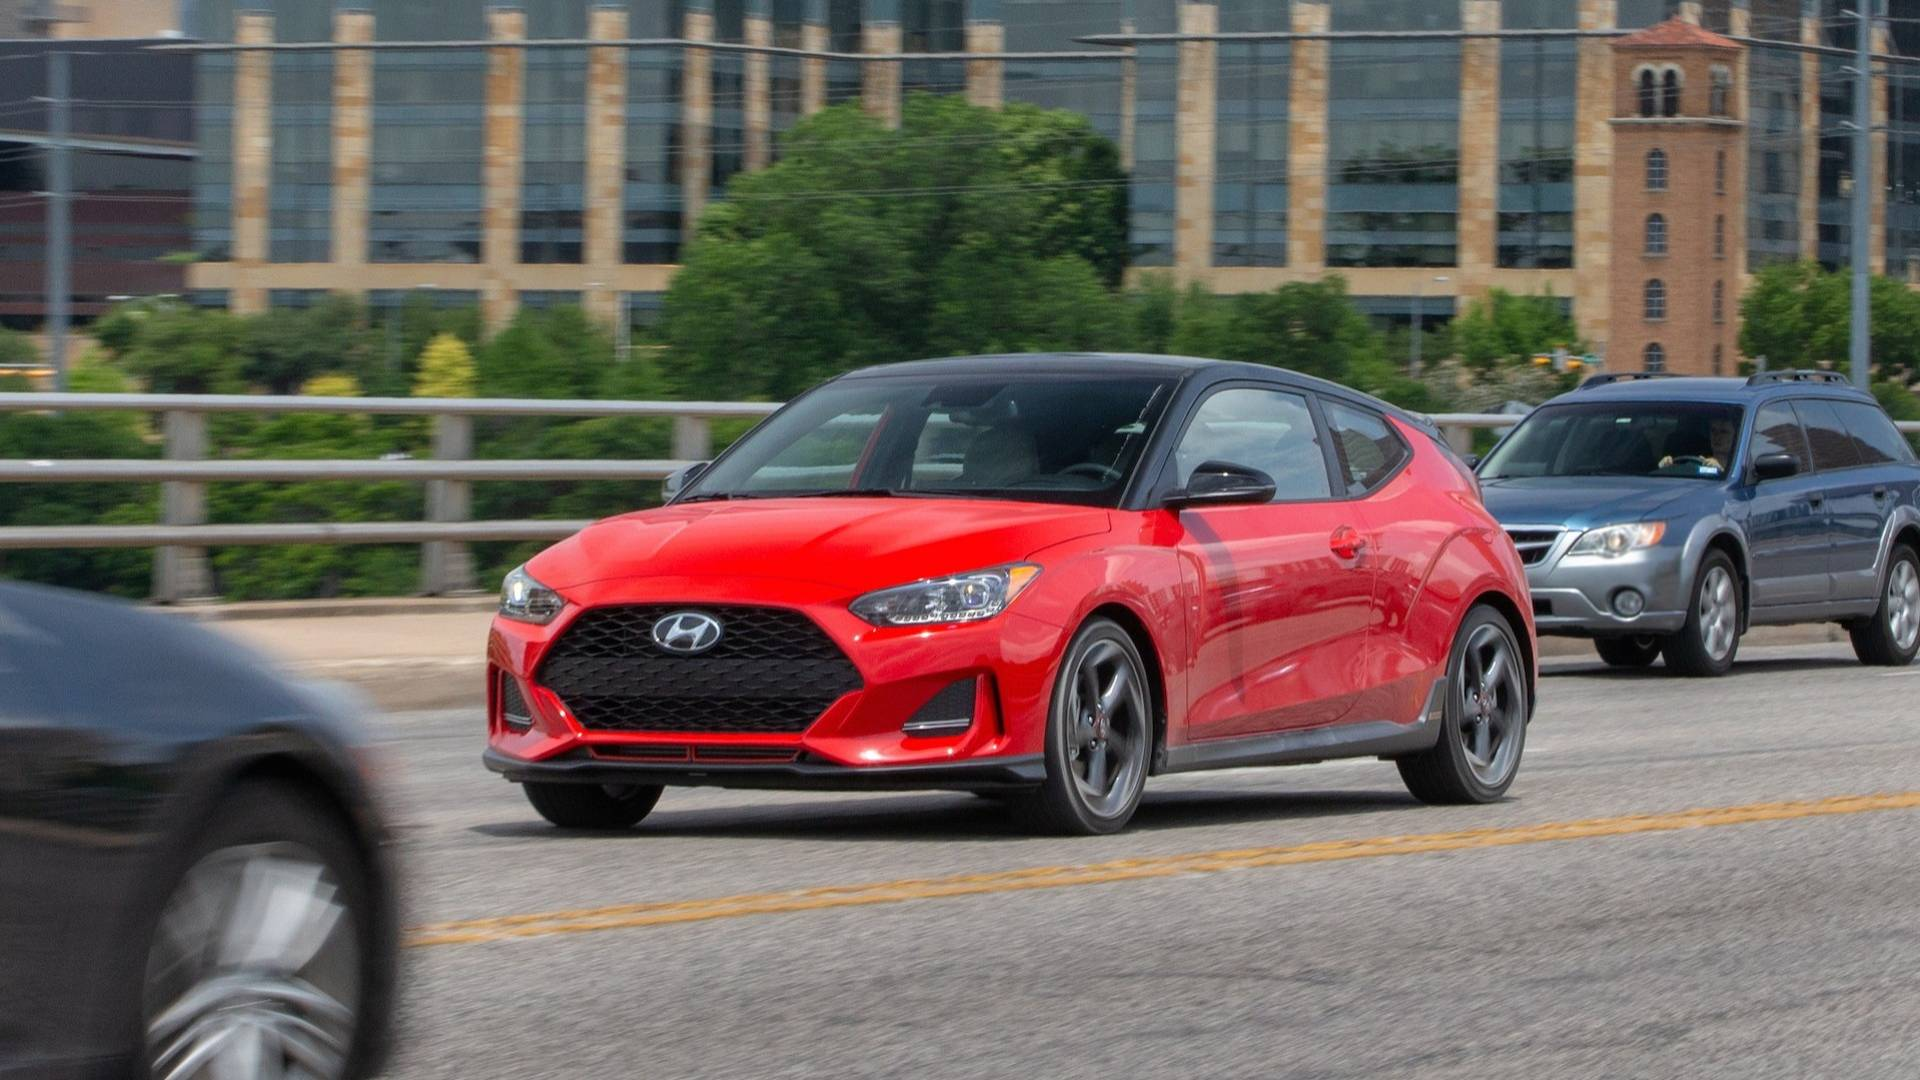 b0adf0a173ee6 2019 Hyundai Veloster First Drive  Still Funky